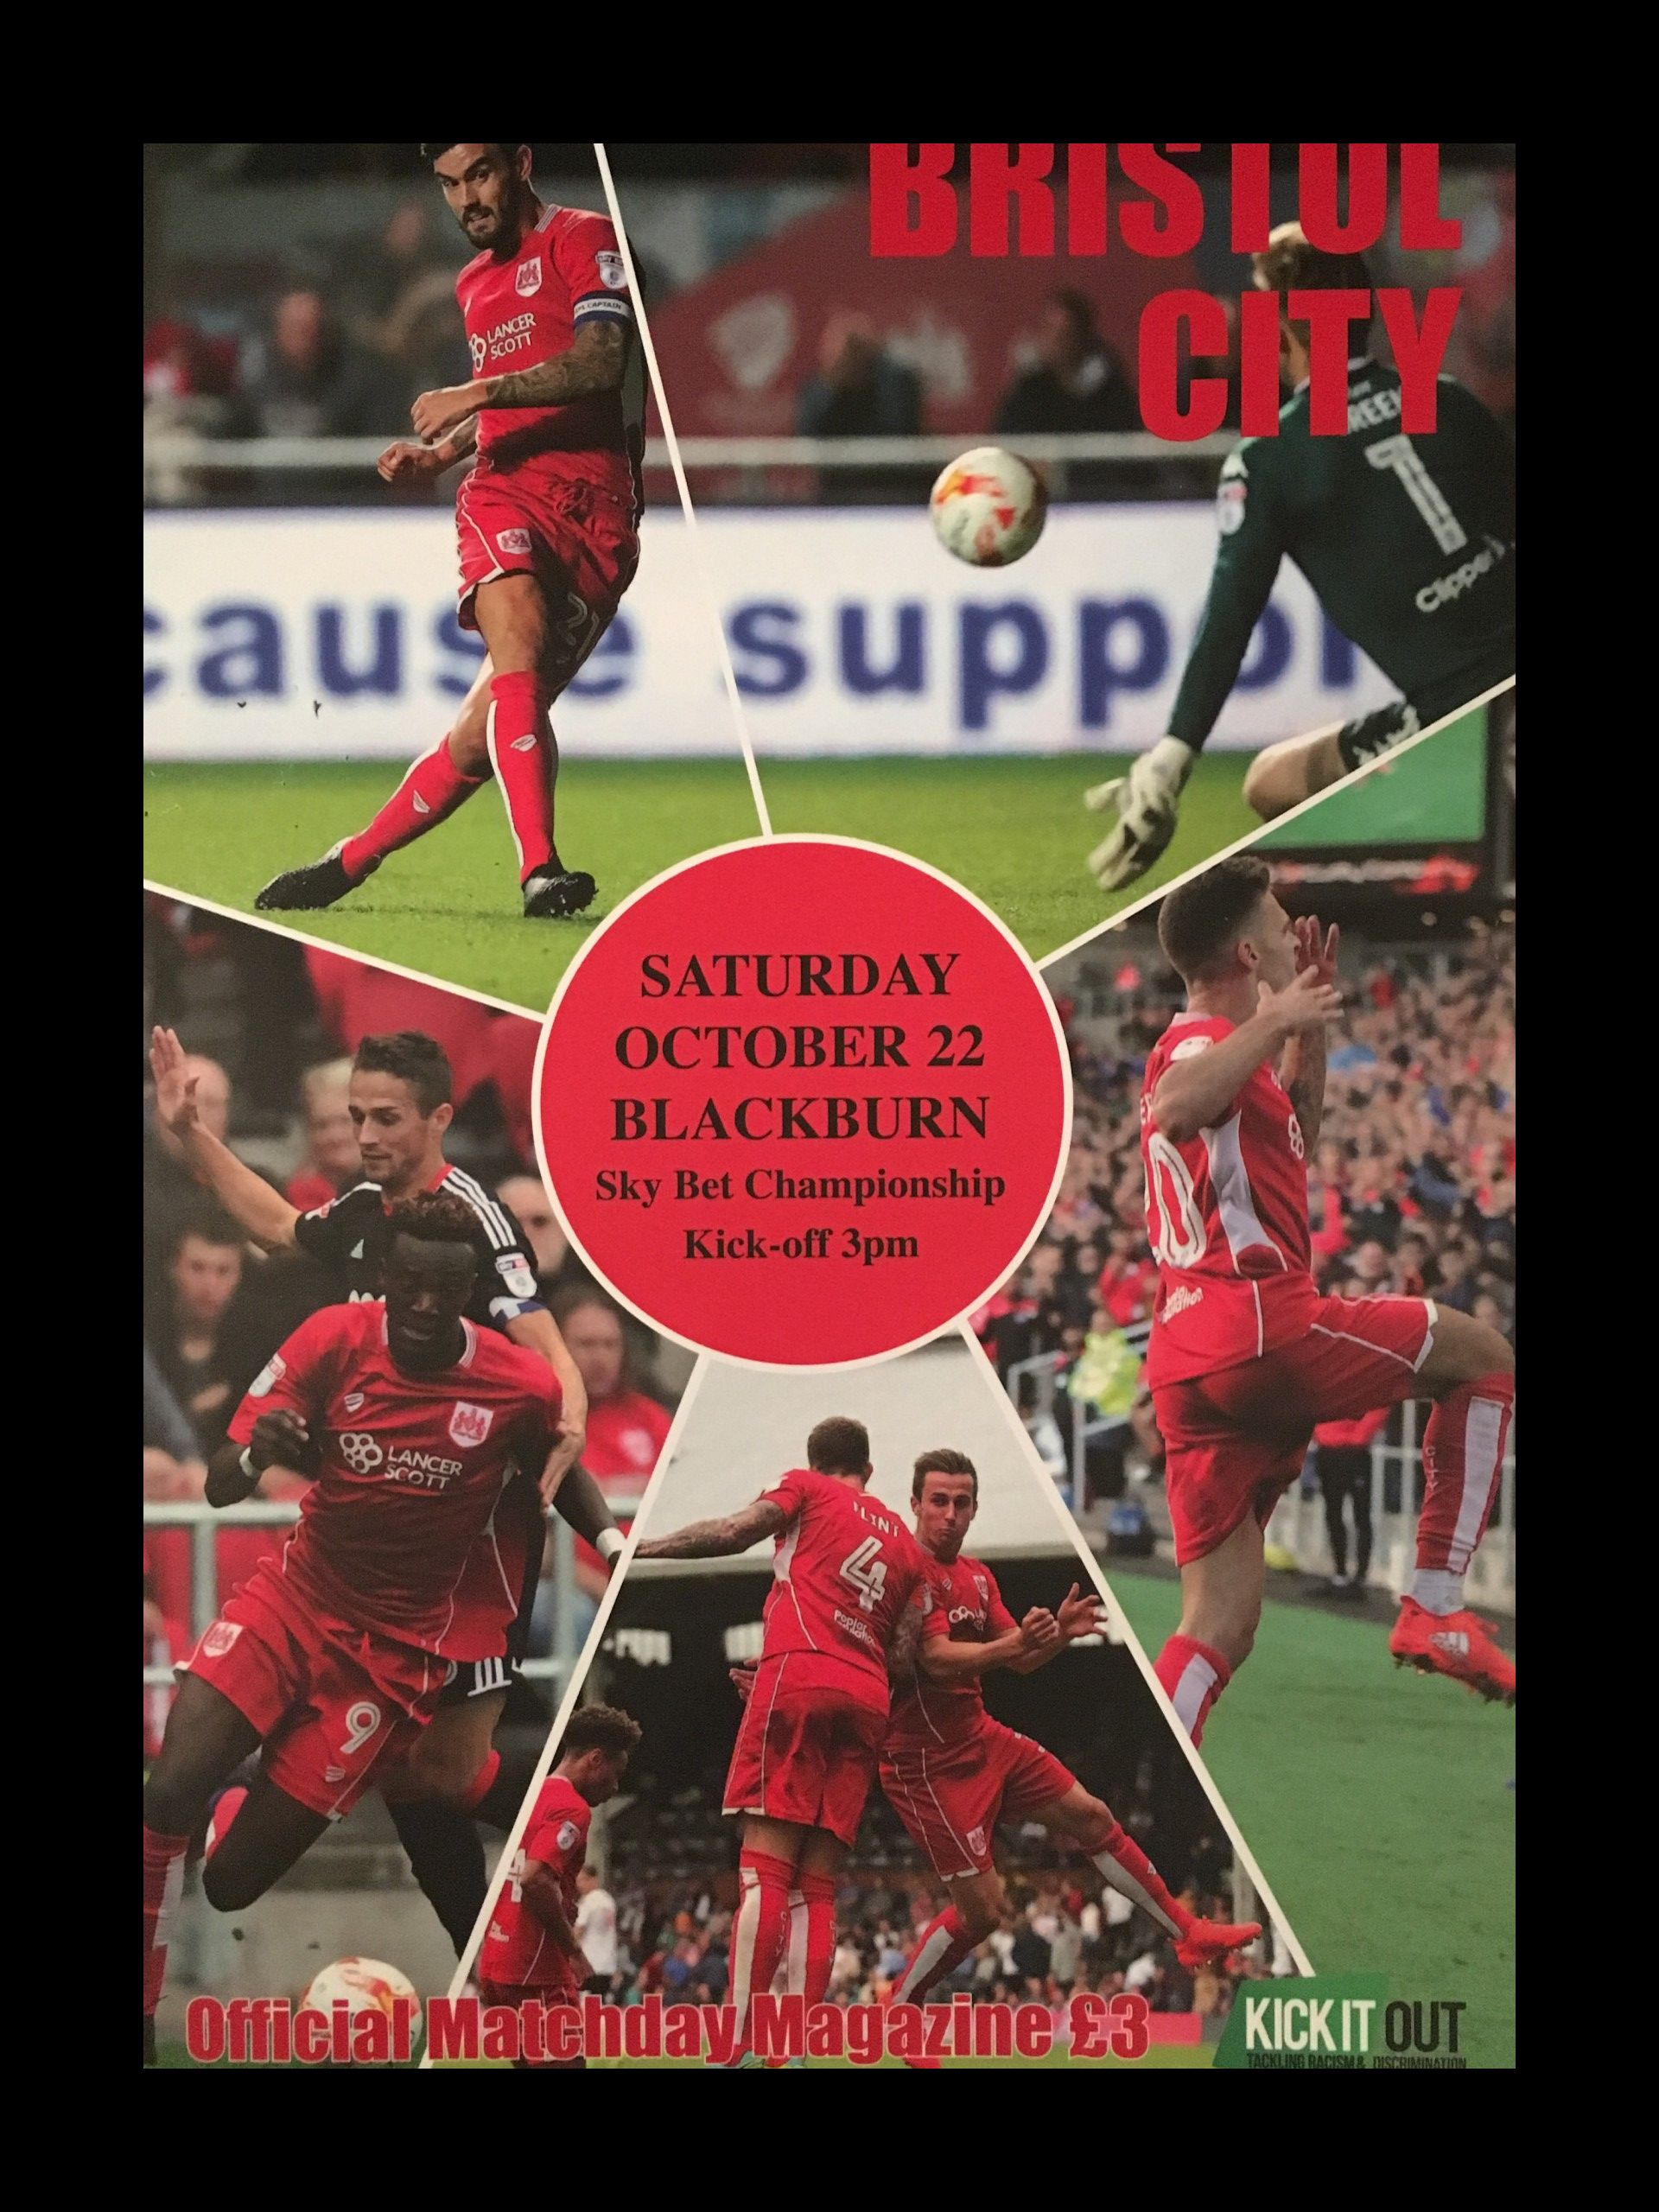 Bristol City v Blackburn Rovers 22-10-2016 Programme